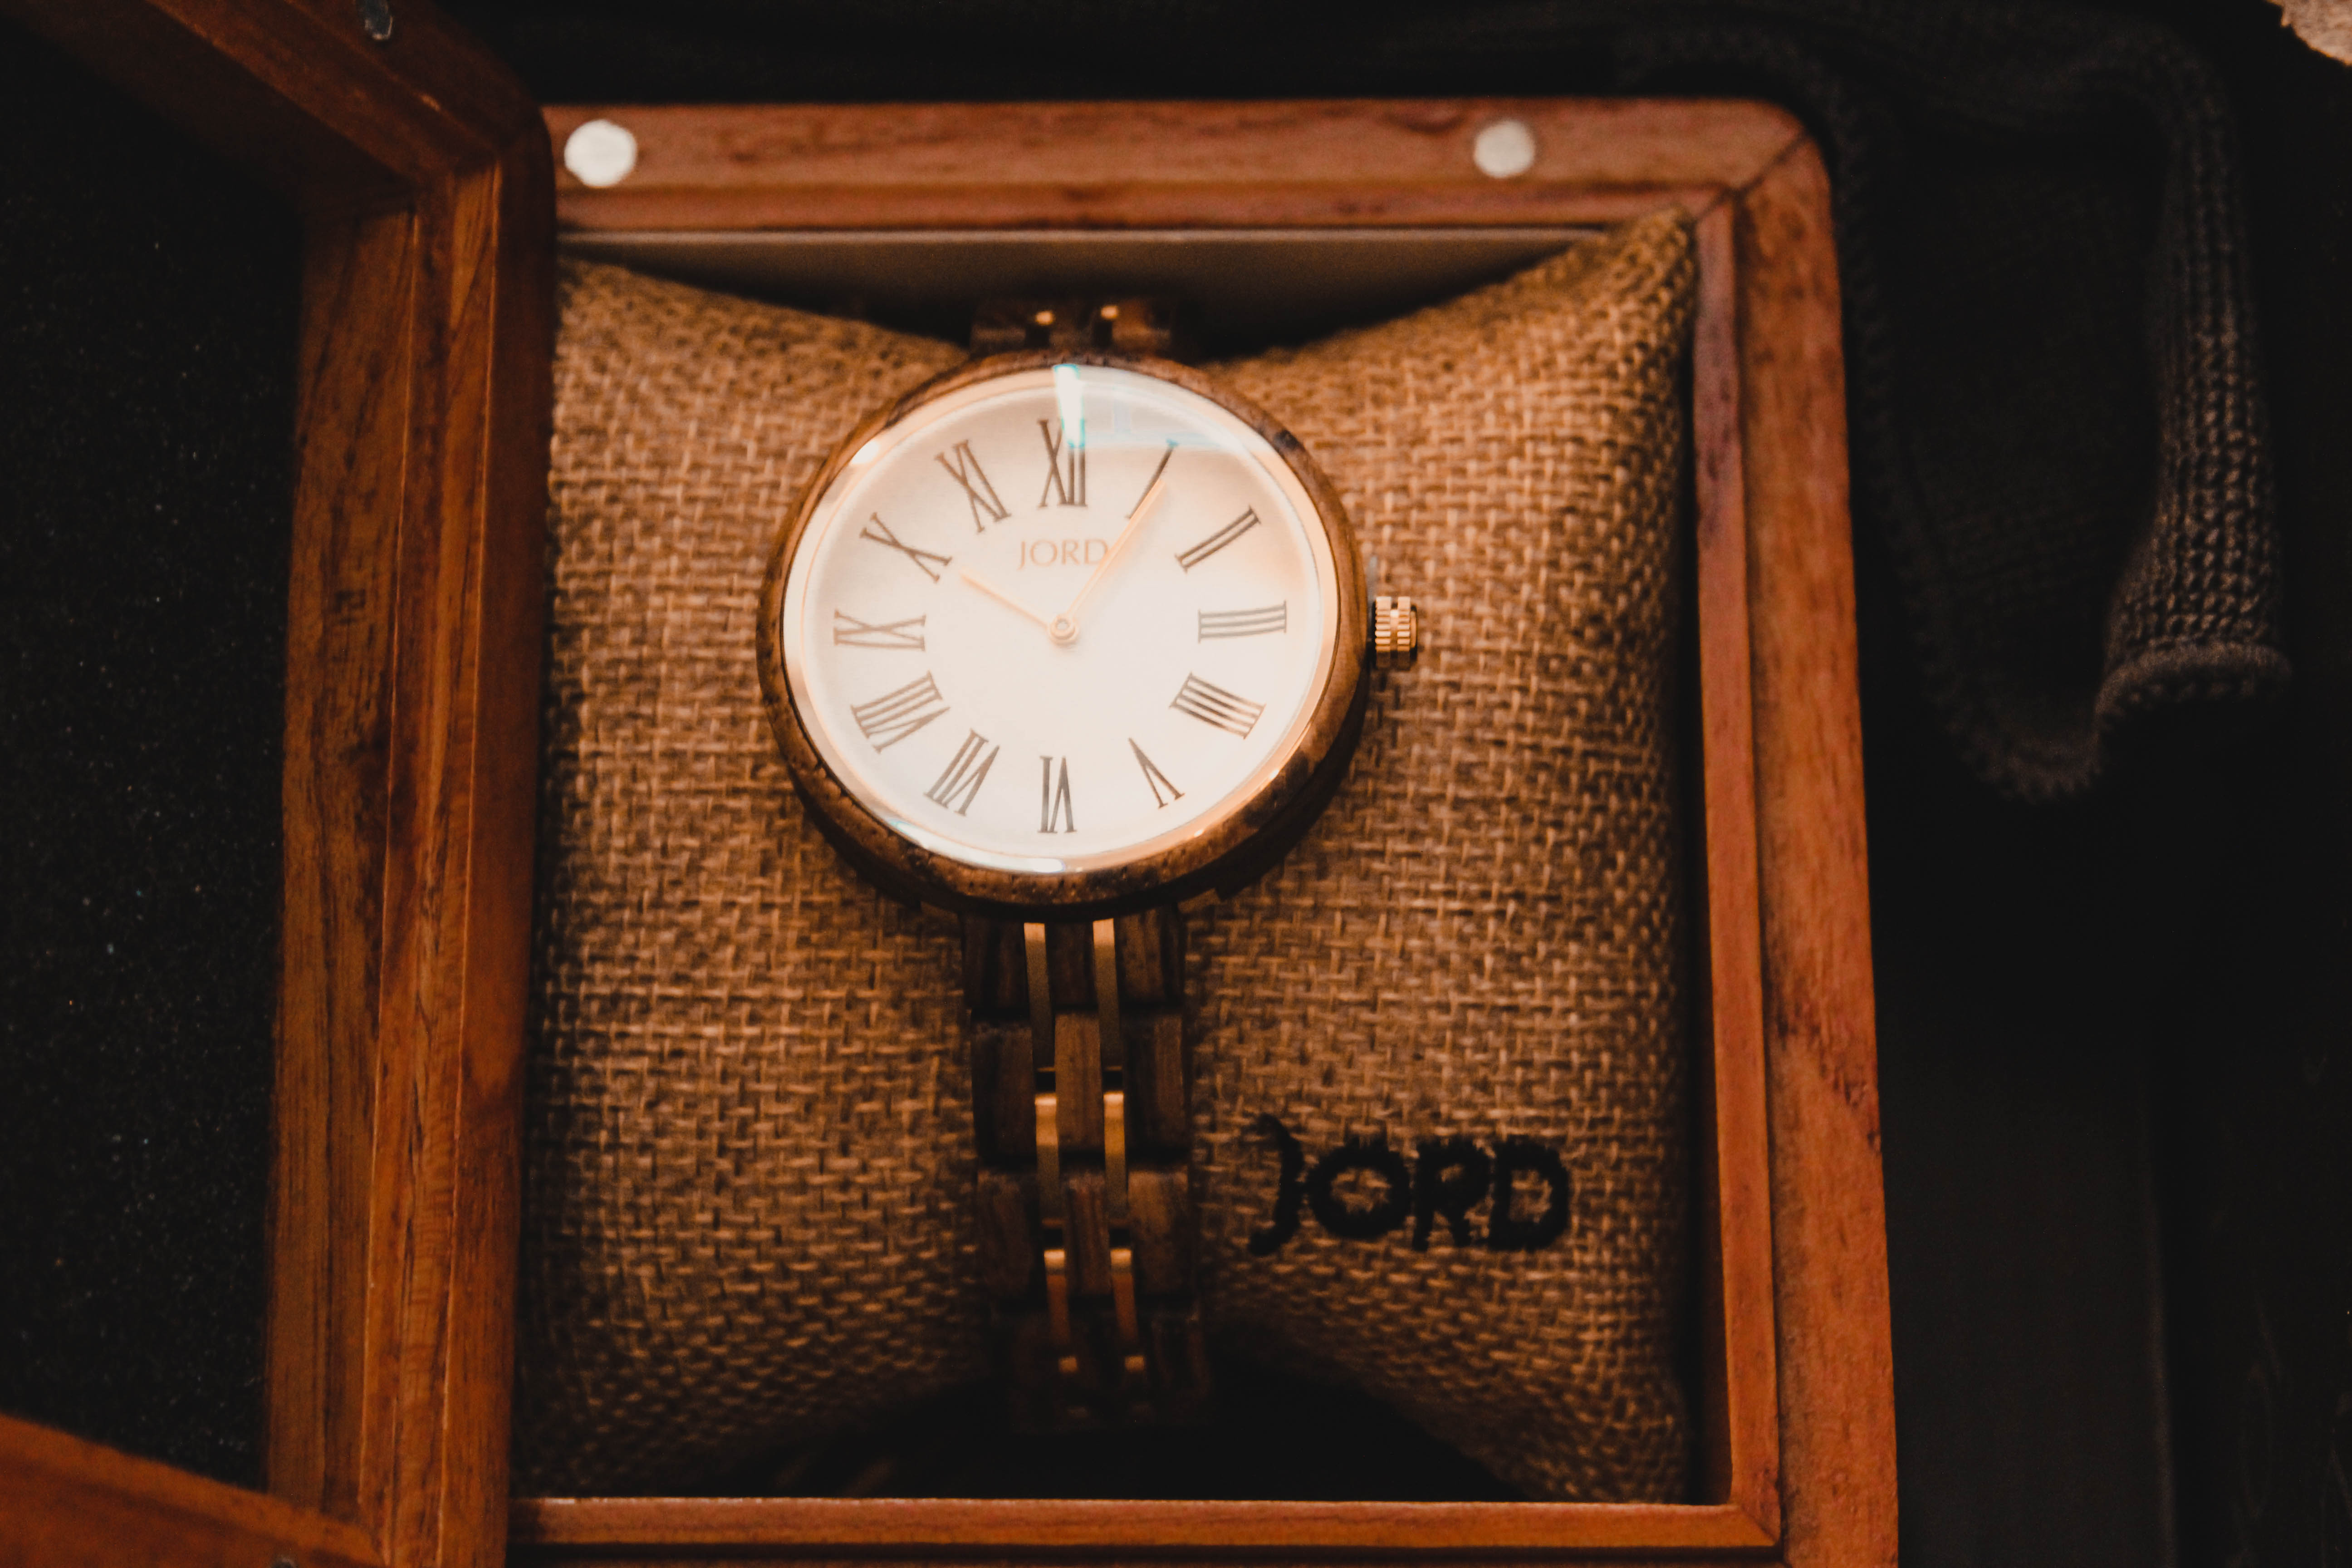 JORD: UNIQUE WATCHES FOR EVERYDAY WEAR